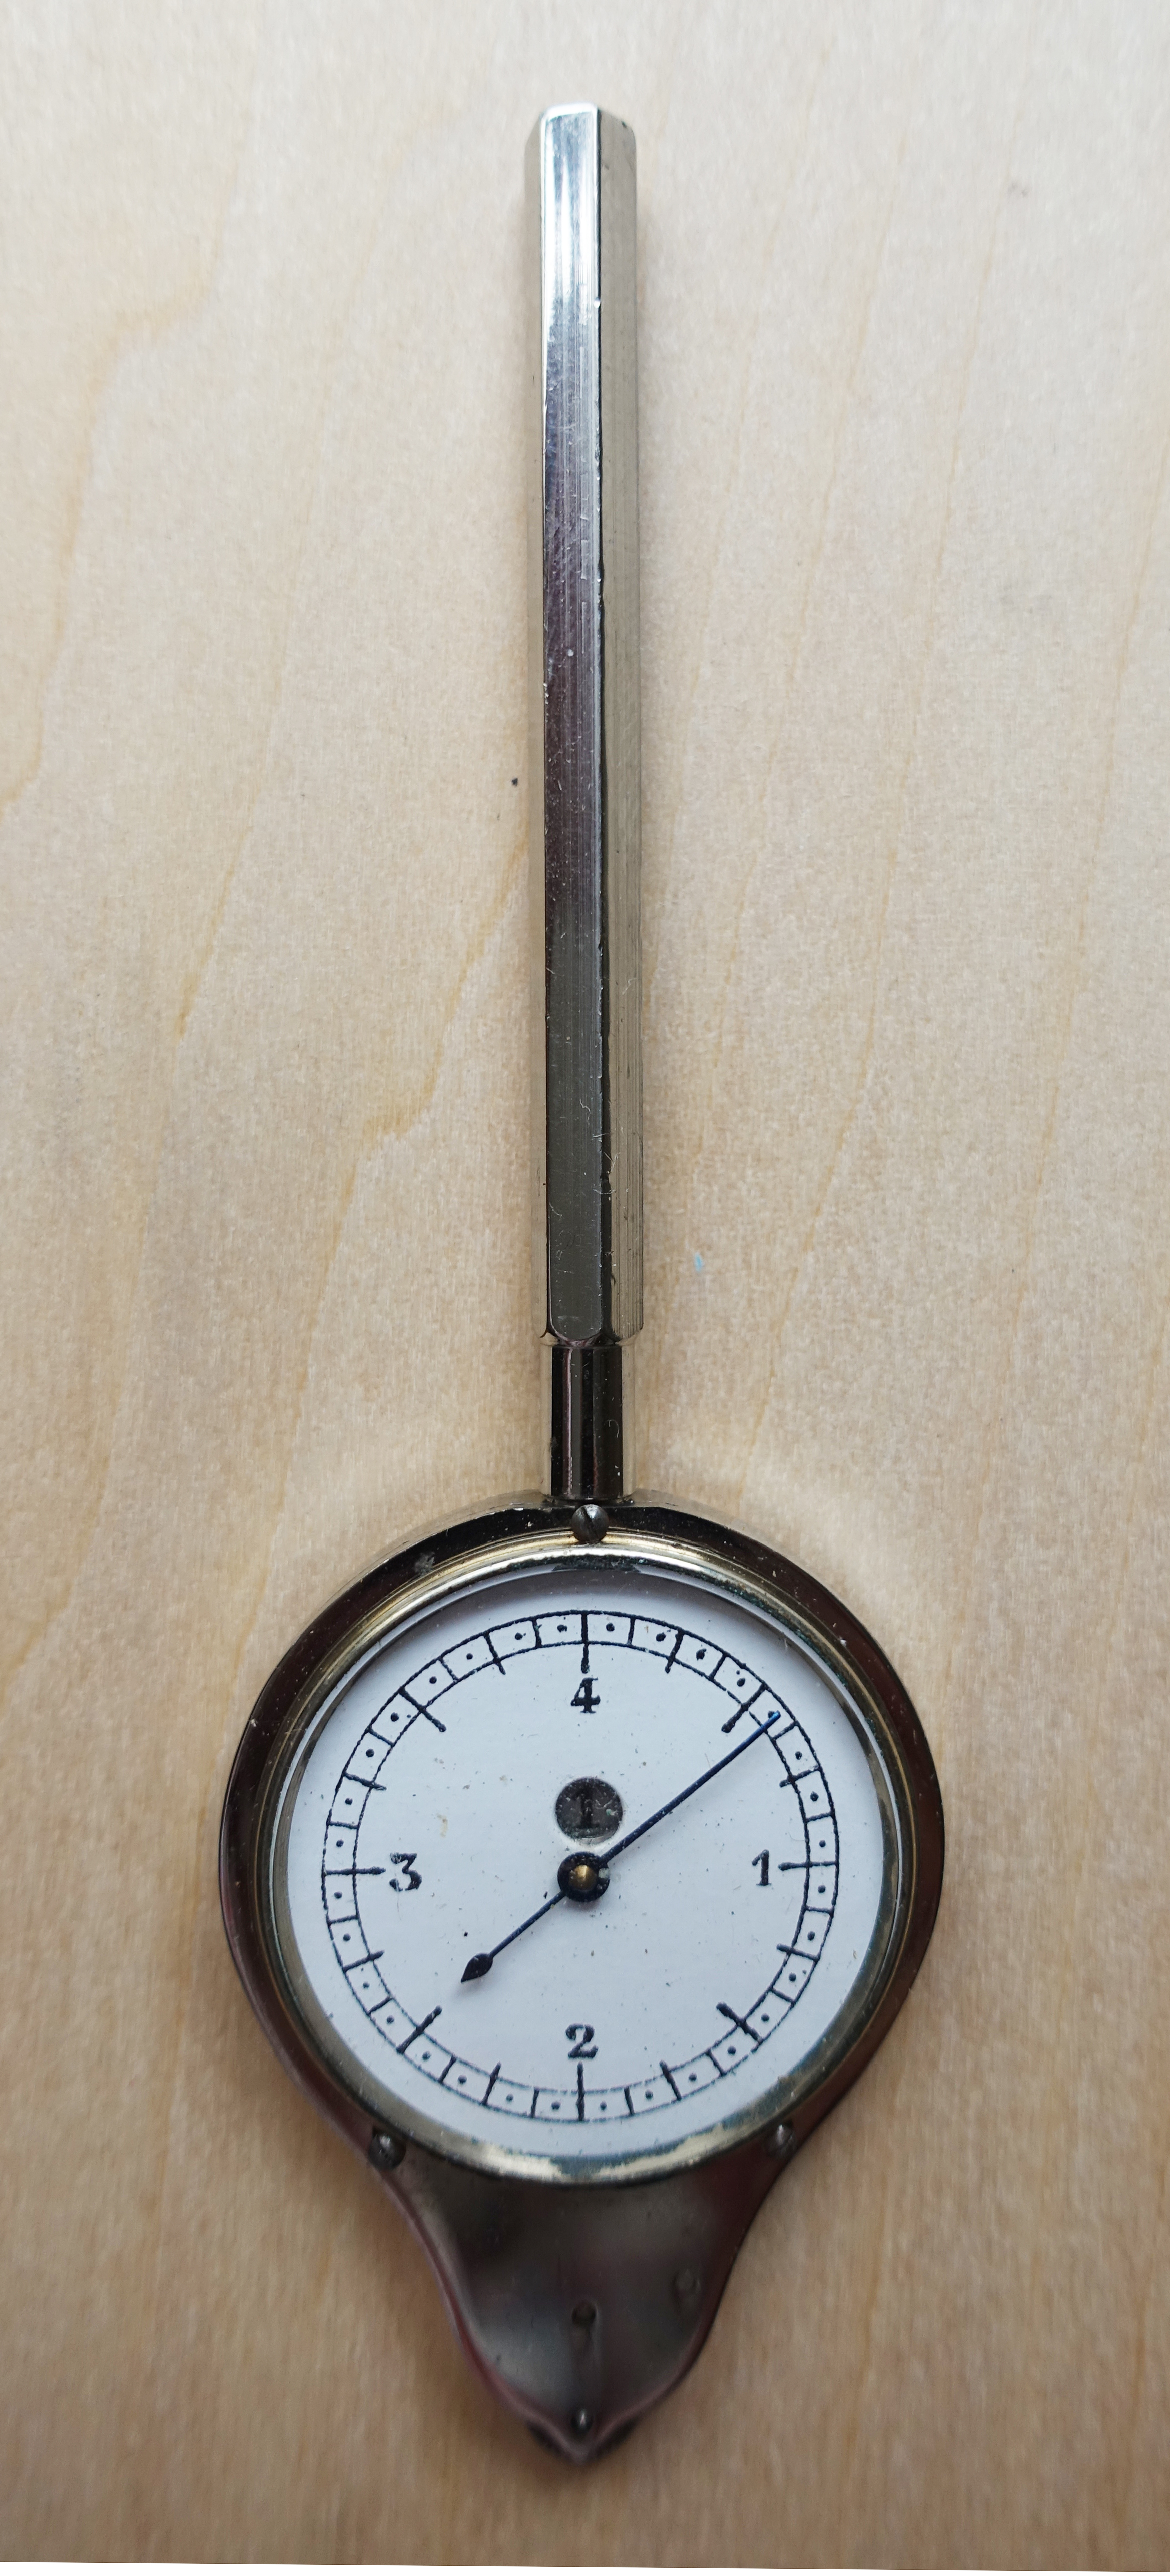 A clean example of an Self-Registering Rotameter made by Henri Chatelain